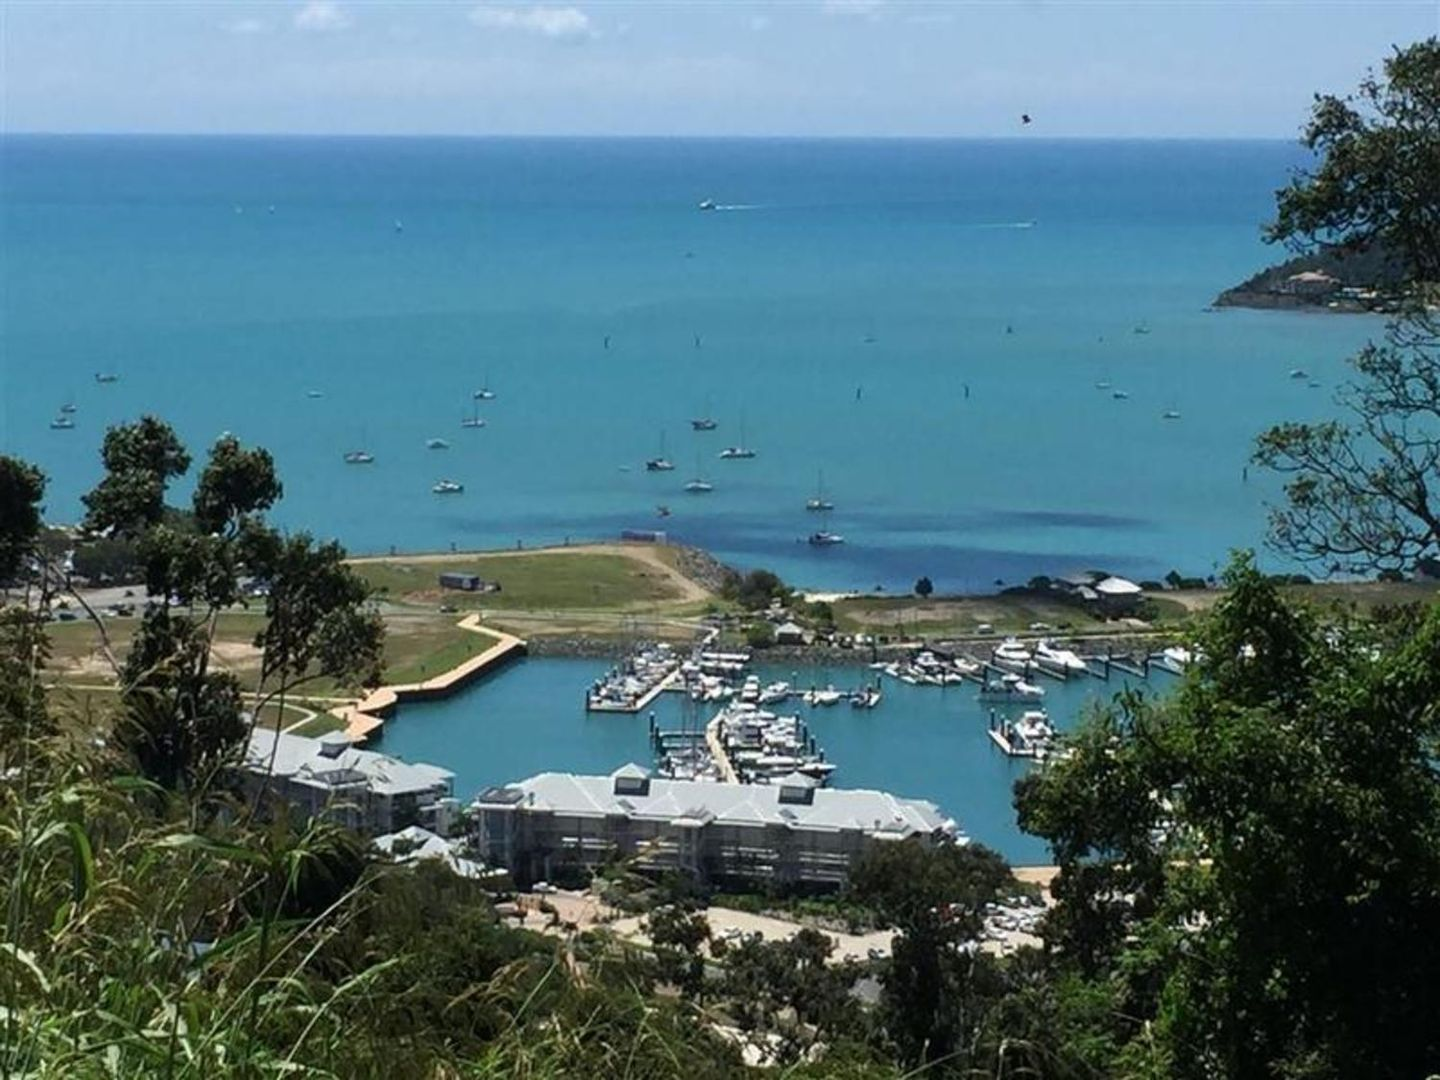 Lot 6/62 Mount Whitsunday Drive, Airlie Beach QLD 4802, Image 0